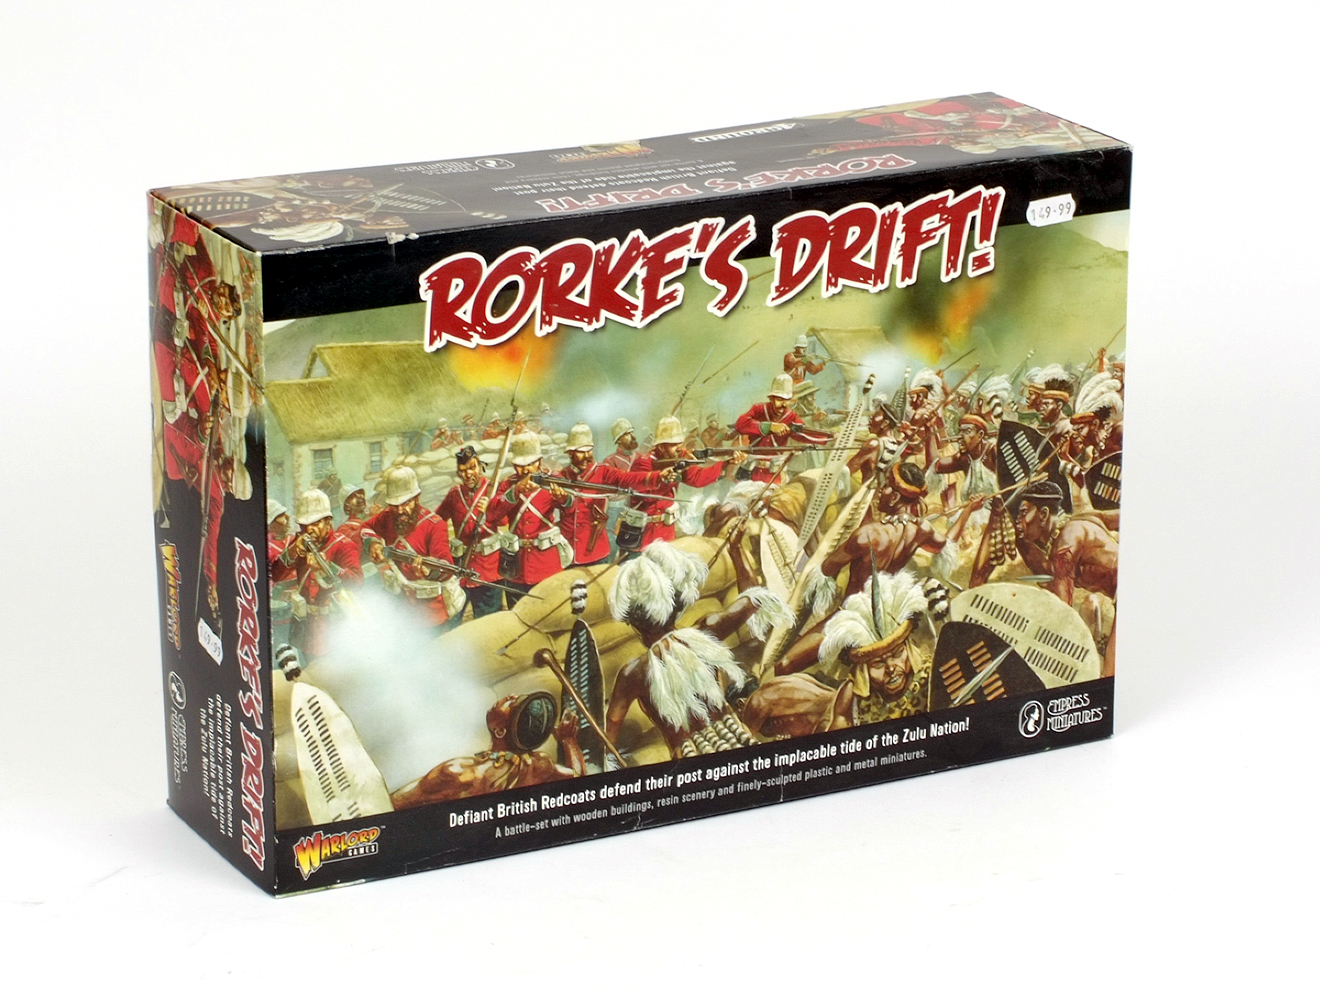 Lot 12 - Warlord Games Rorke's Drift battle set, comprising wooden buildings,